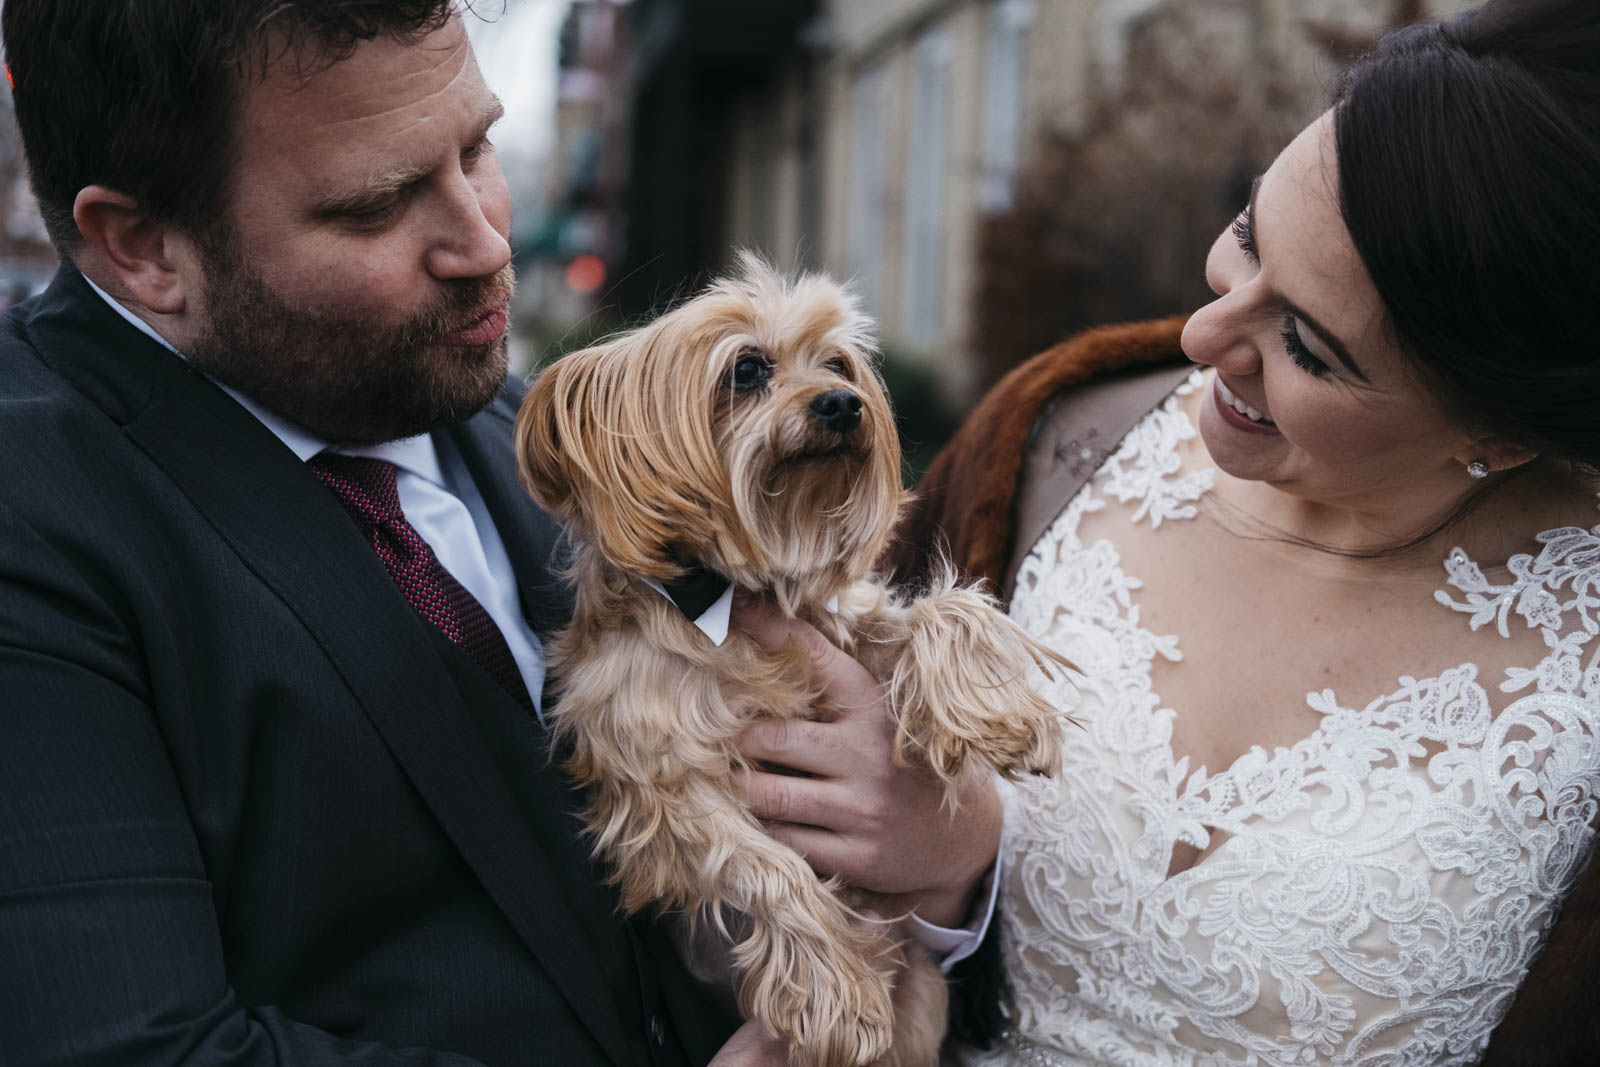 Pet photography with bride and groom on wedding day.